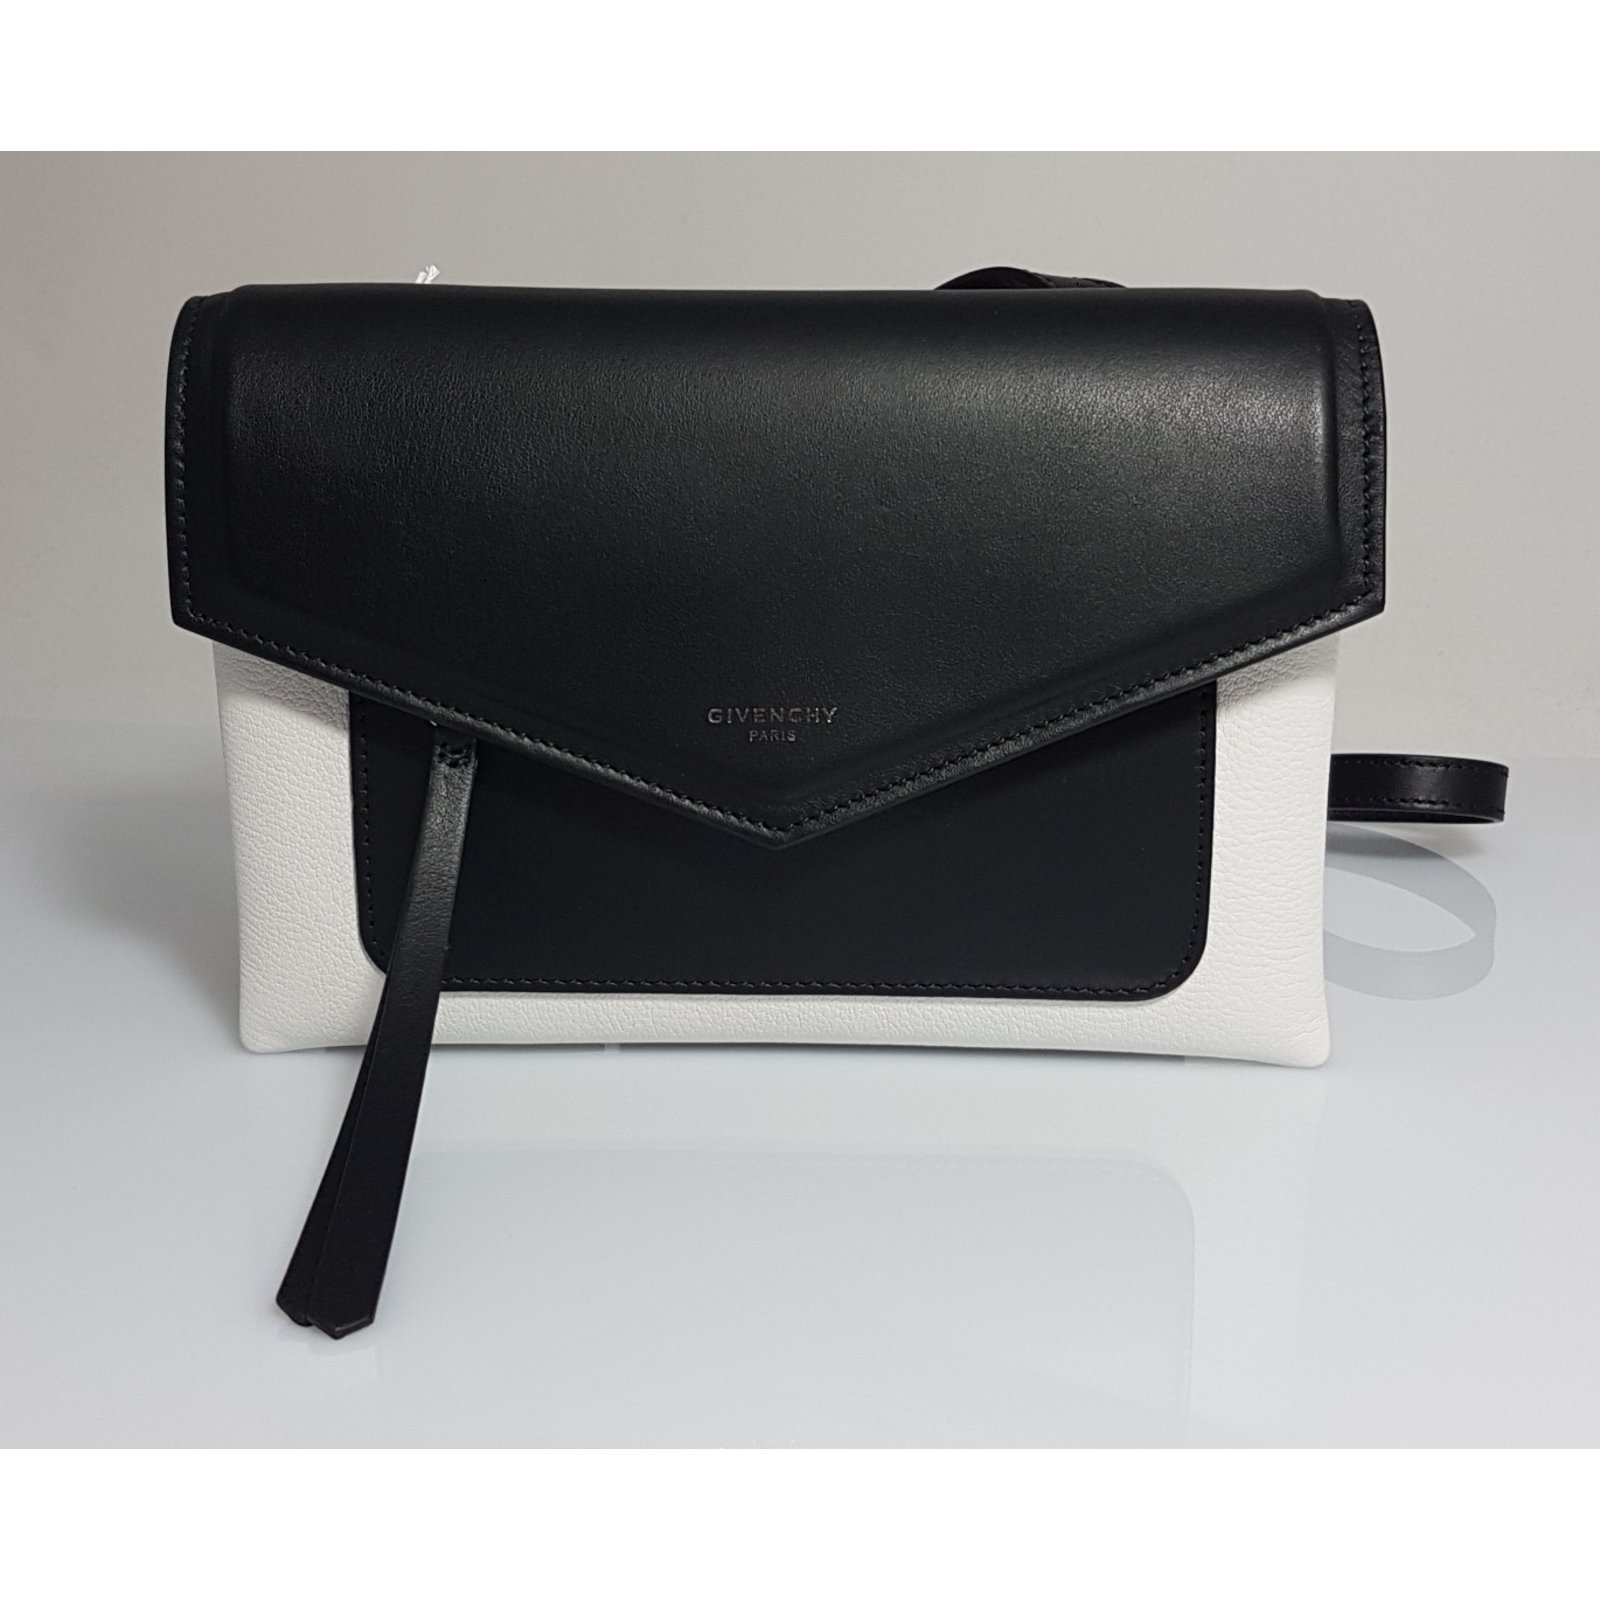 352414d671 Givenchy Givenchy Duetto Crossbody bag Handbags Leather Multiple ...